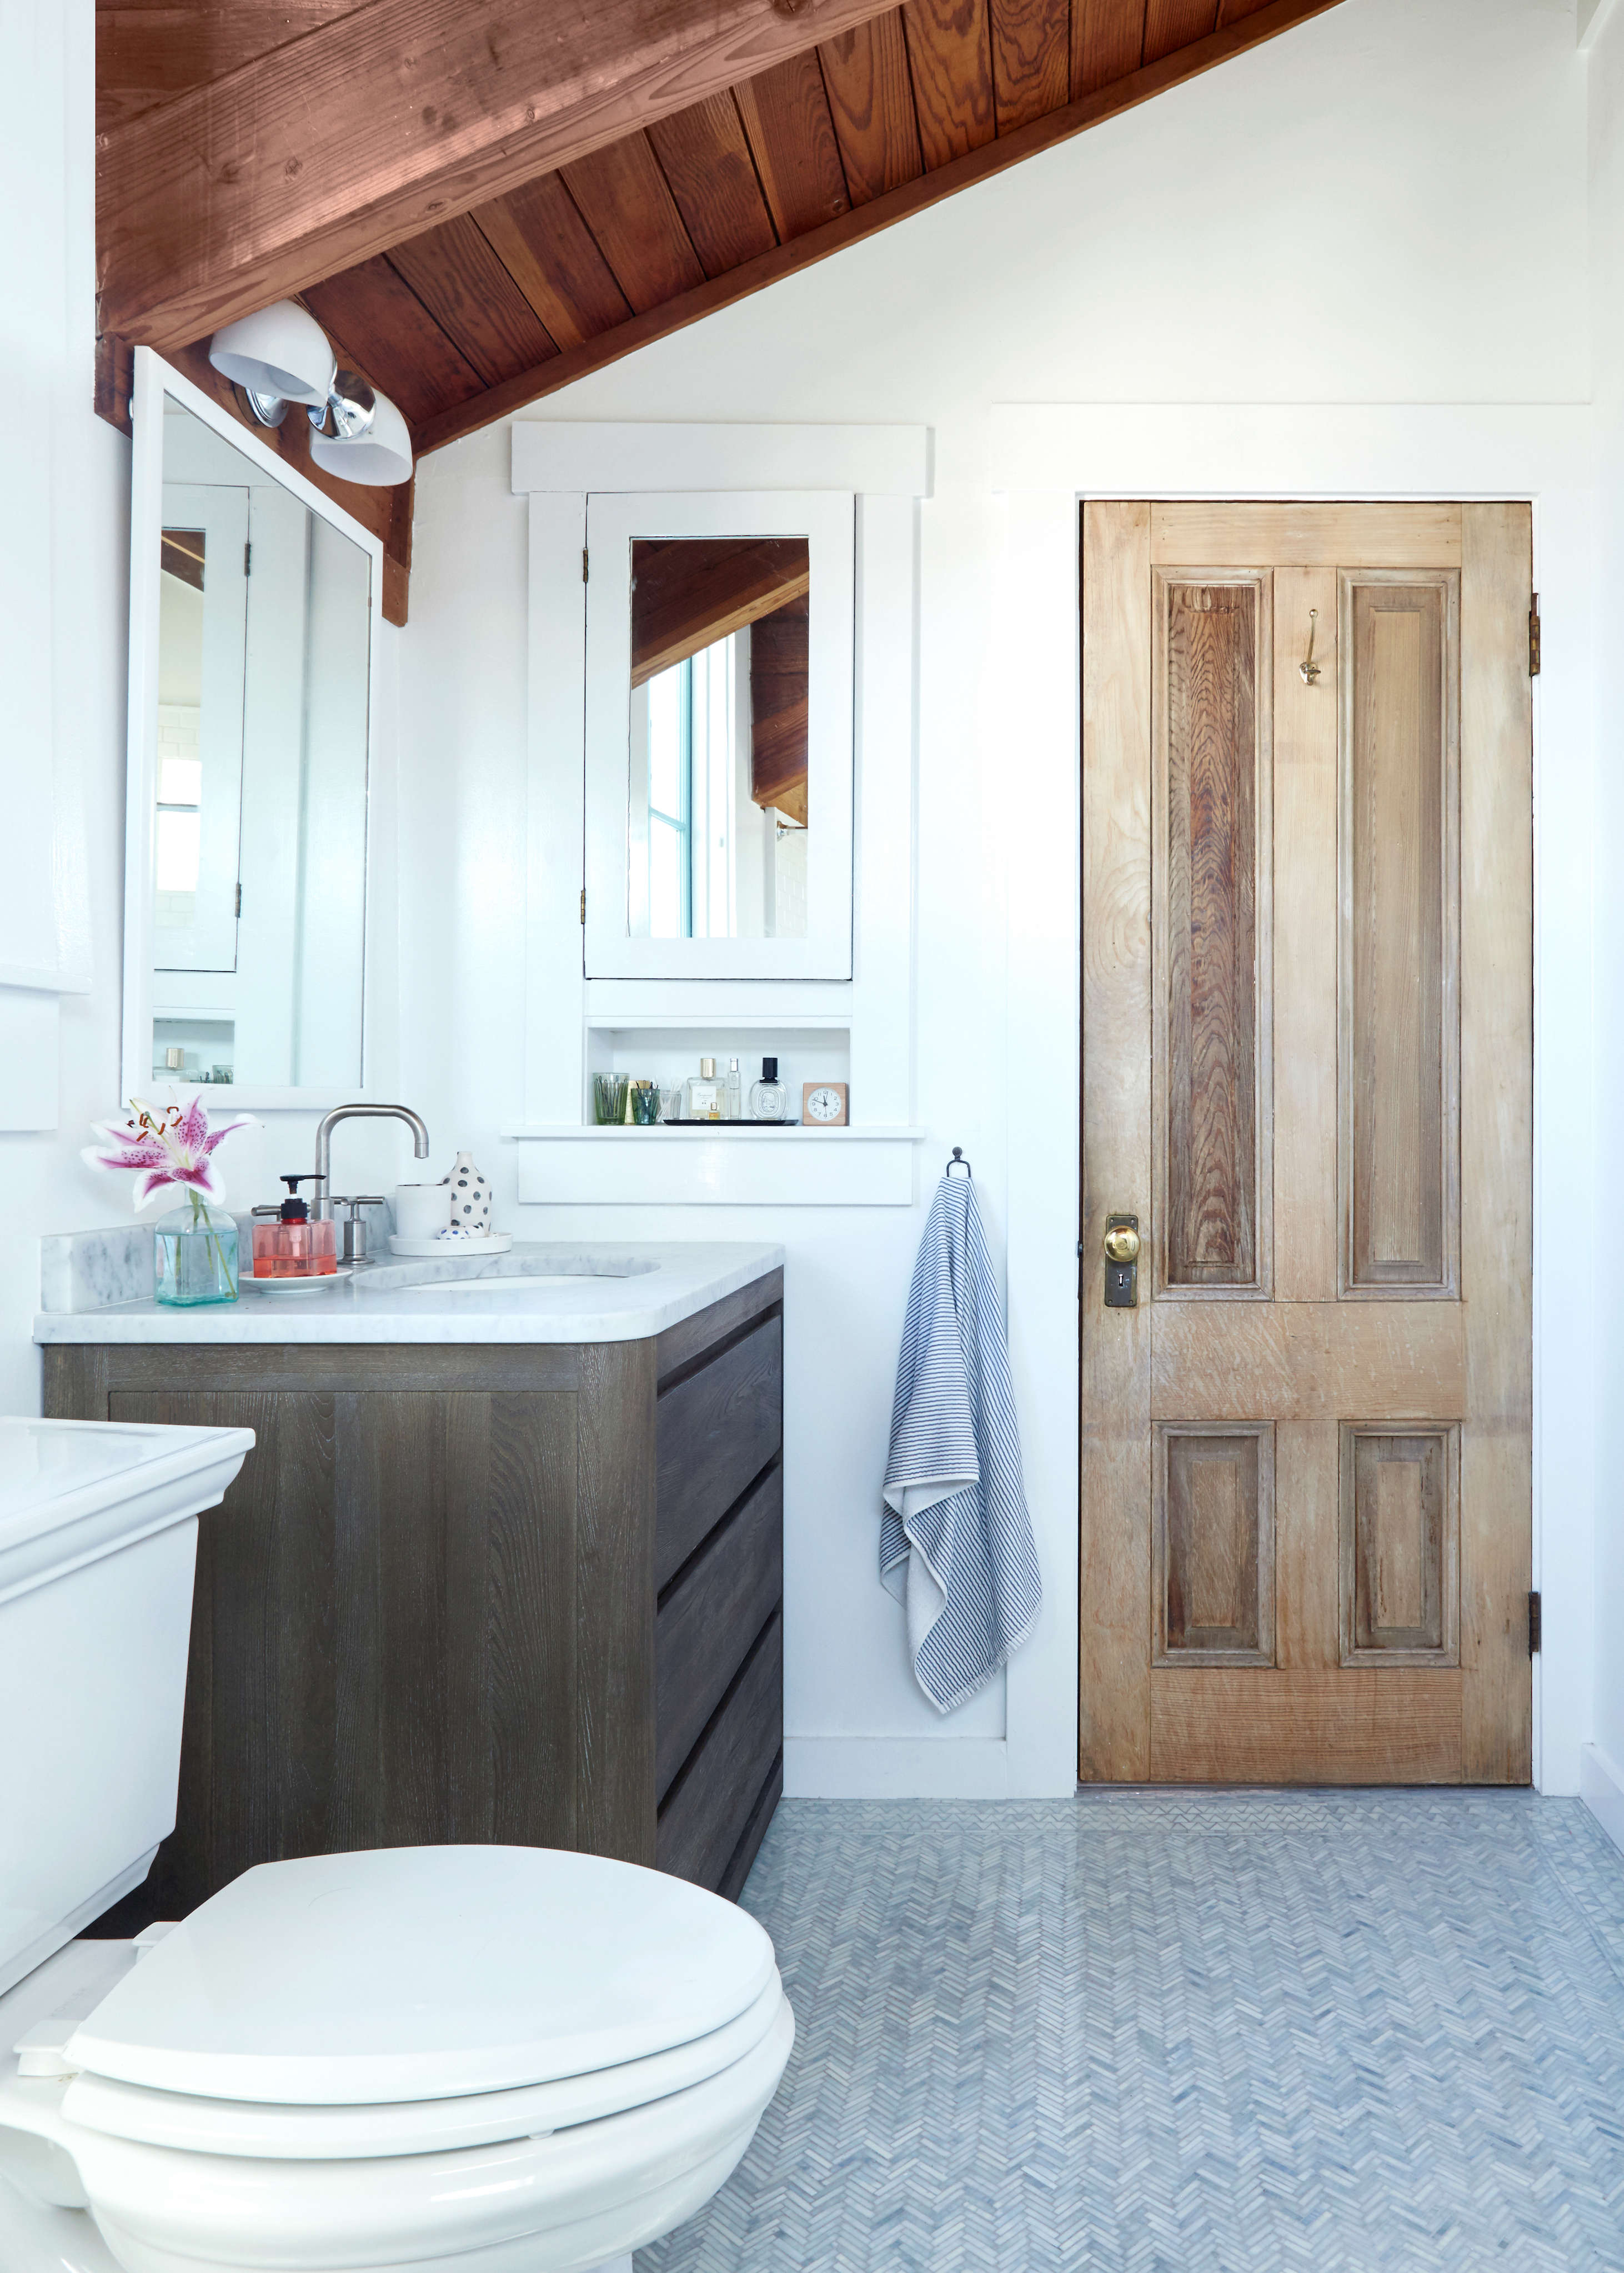 Wanting to inject a bright, clean look to their master bath, Brackett and her husband askedMyers to createa floorevocative of &#8